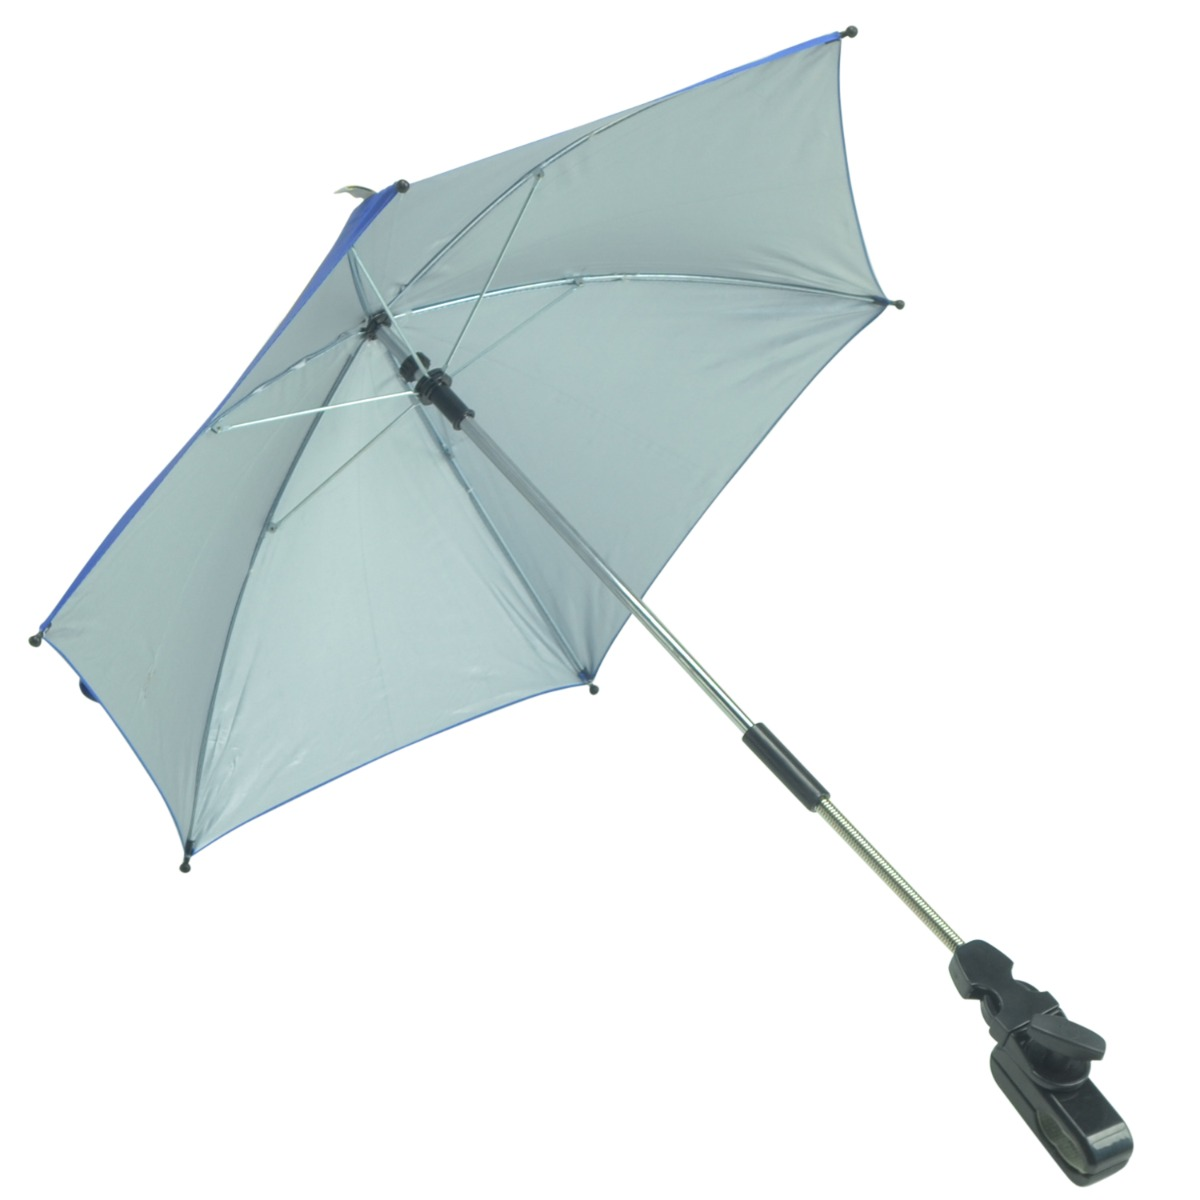 Baby-Parasol-Universal-Sun-Umbrella-Shade-Maker-Canopy-For-Pushchair-Pram-Buggy thumbnail 23